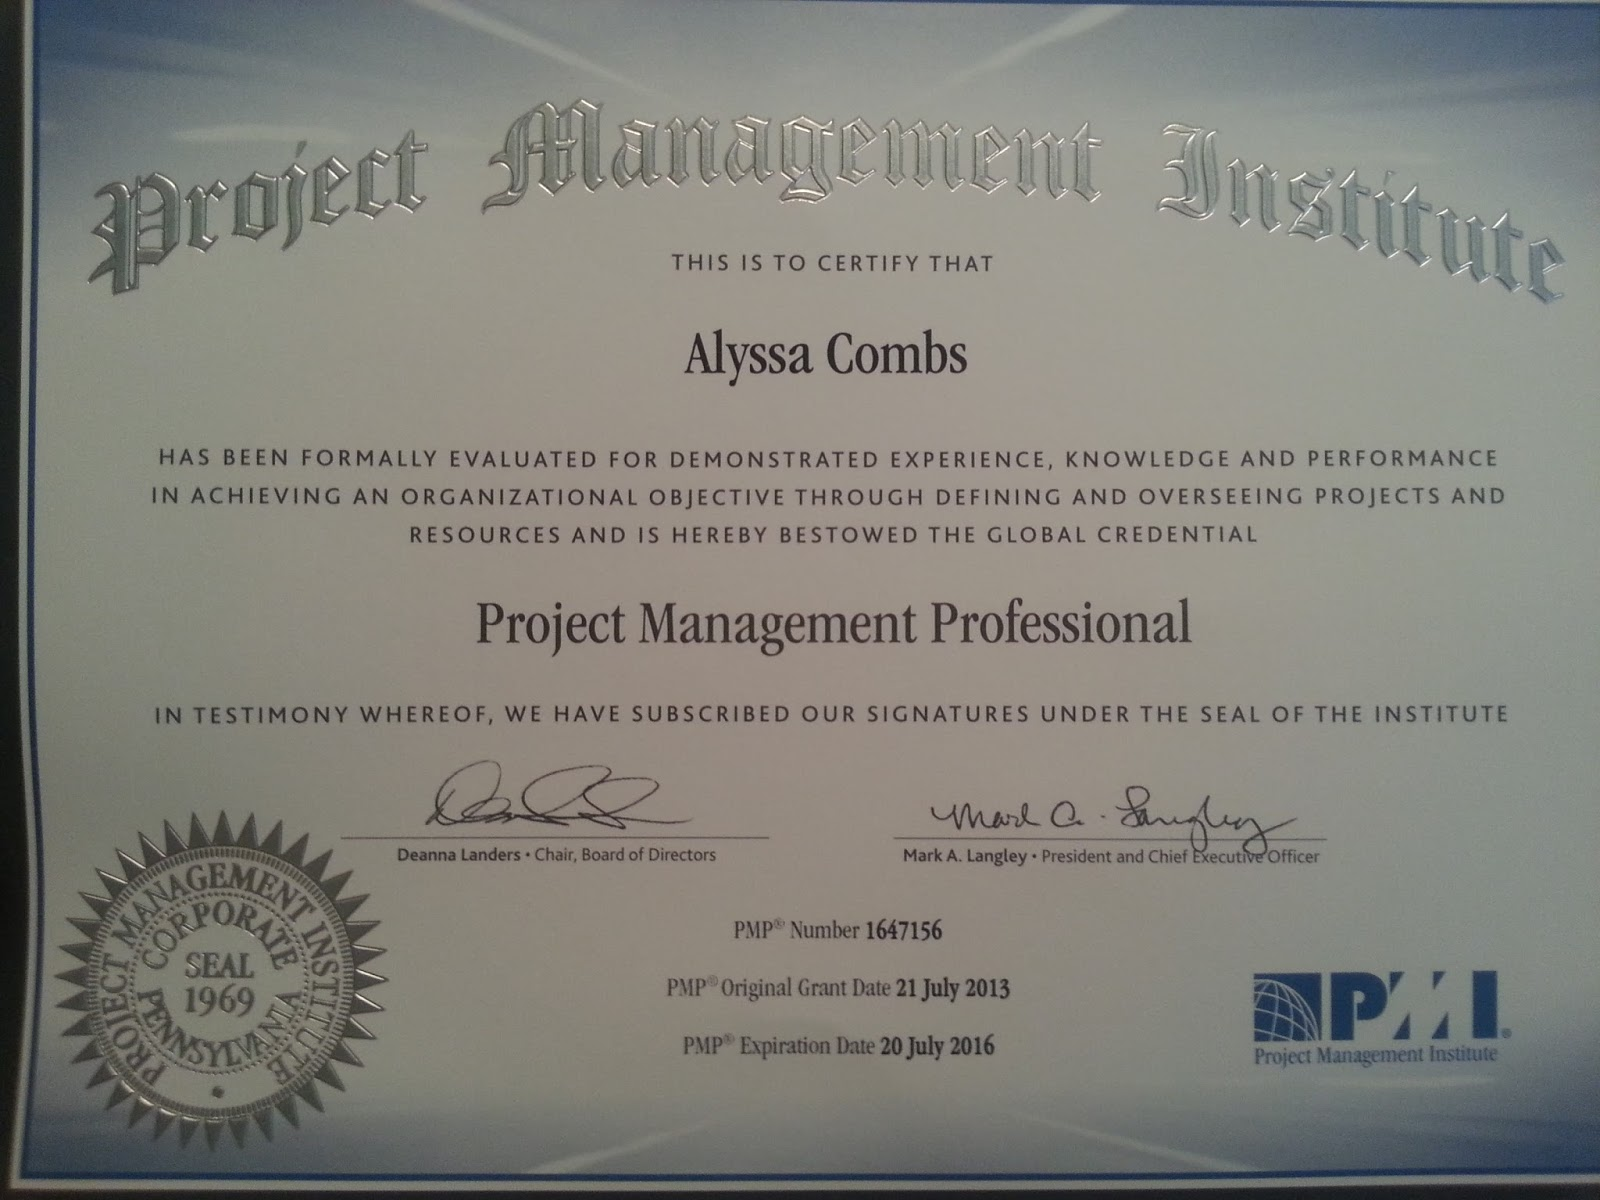 Alyssa combs youngest project manager professional journey blog thanks everyone 1betcityfo Choice Image